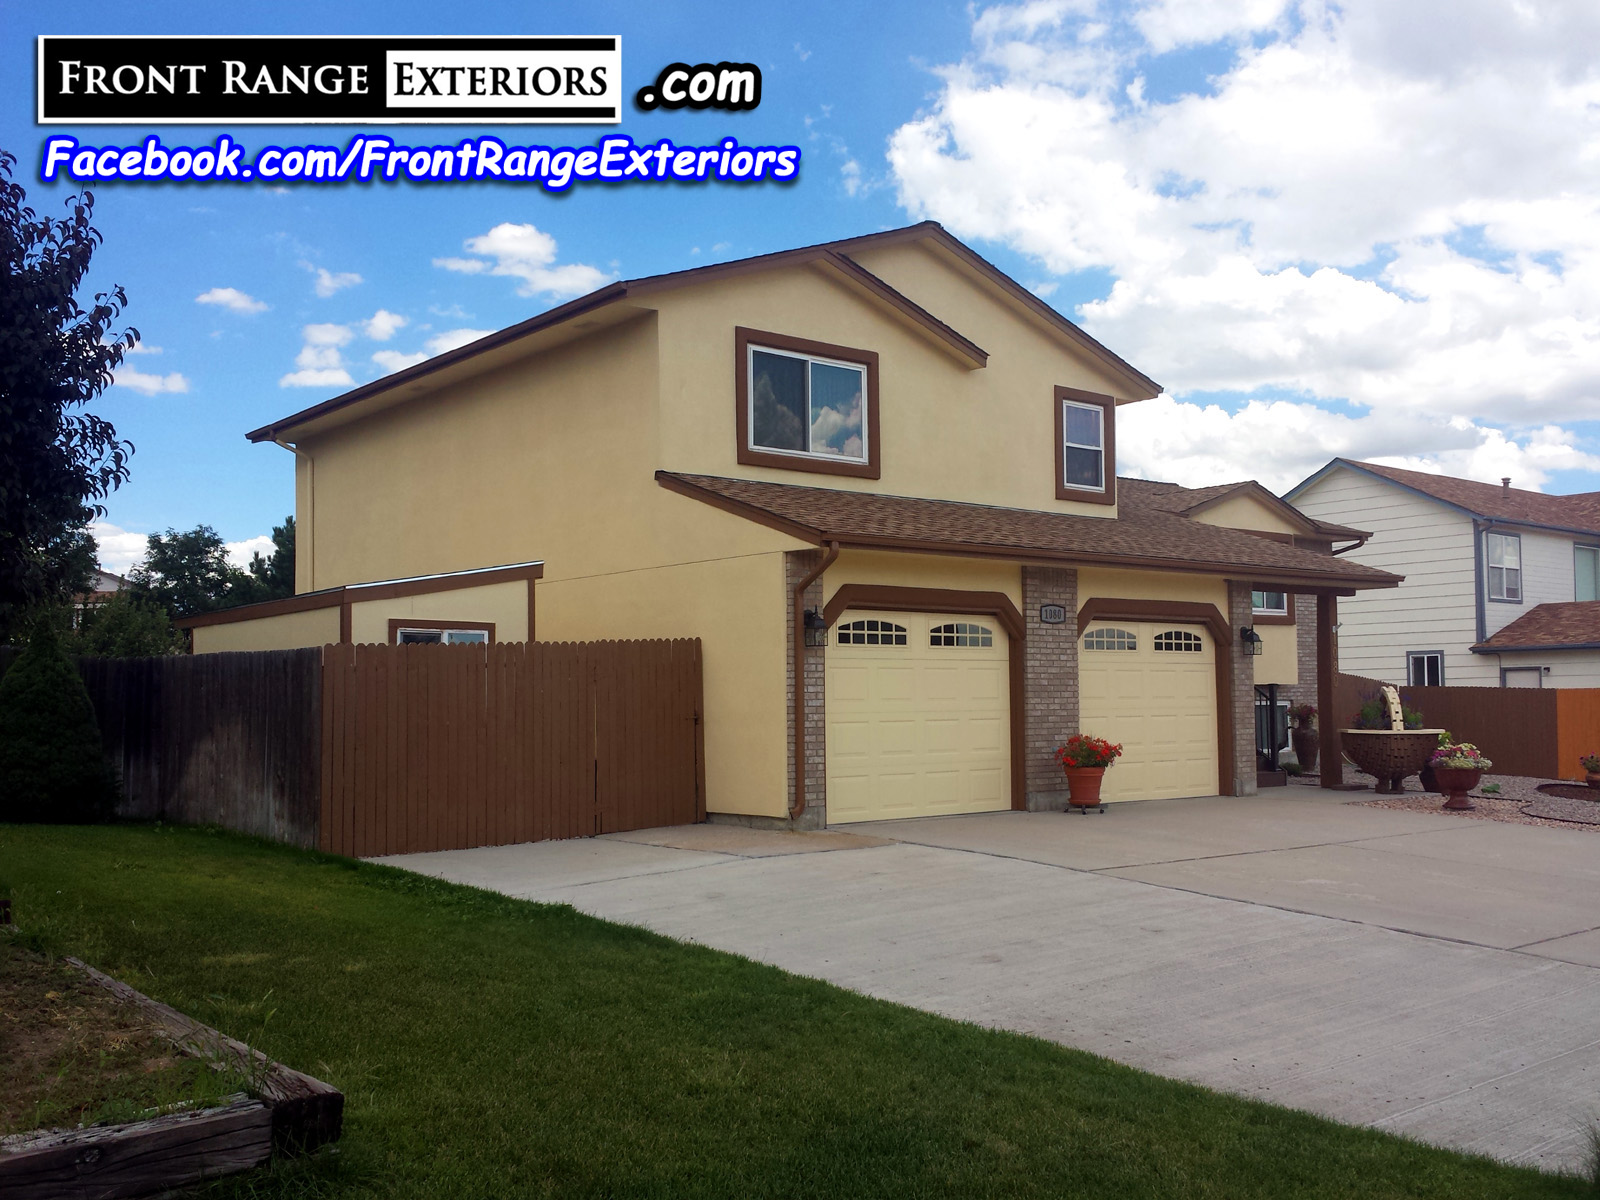 Front range exteriors inc stucco over siding and painting job in colorado springs - Colorado springs exterior house painting paint ...